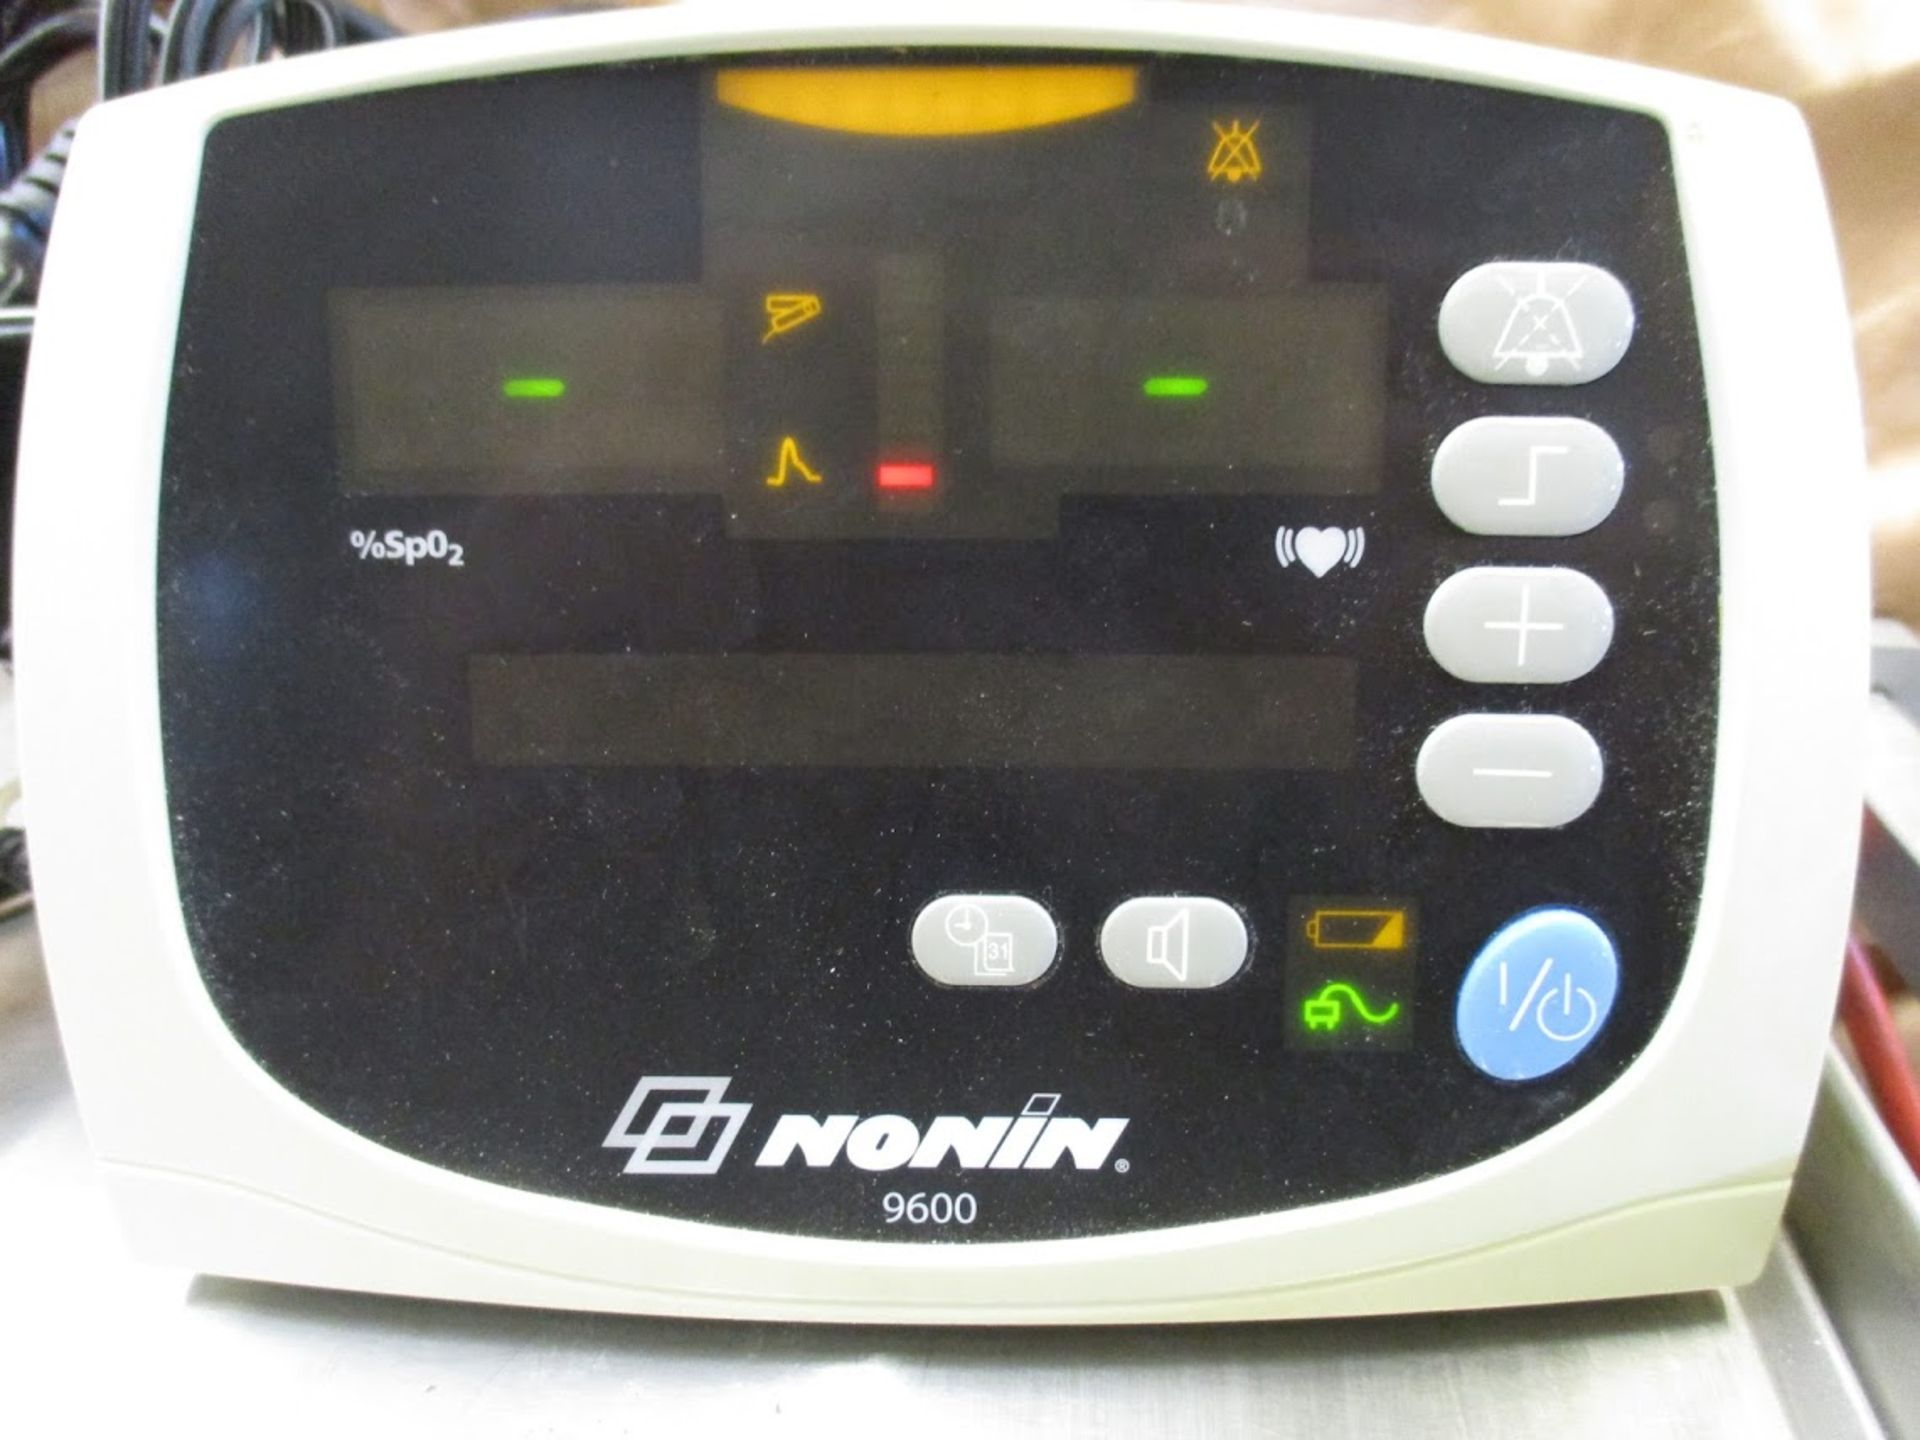 Nonin 9600 Pulse Oximeter with blood pressure cuffs. 115V - Image 3 of 7